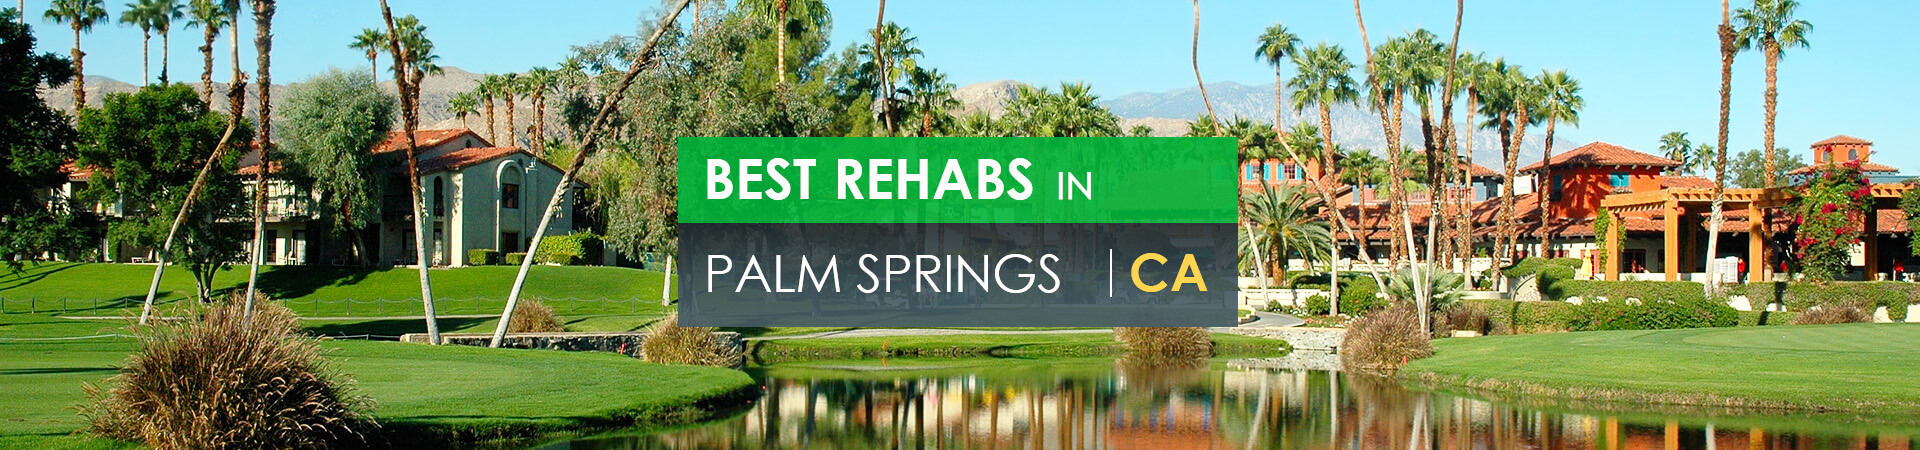 Best rehabs in Palm Springs, CA